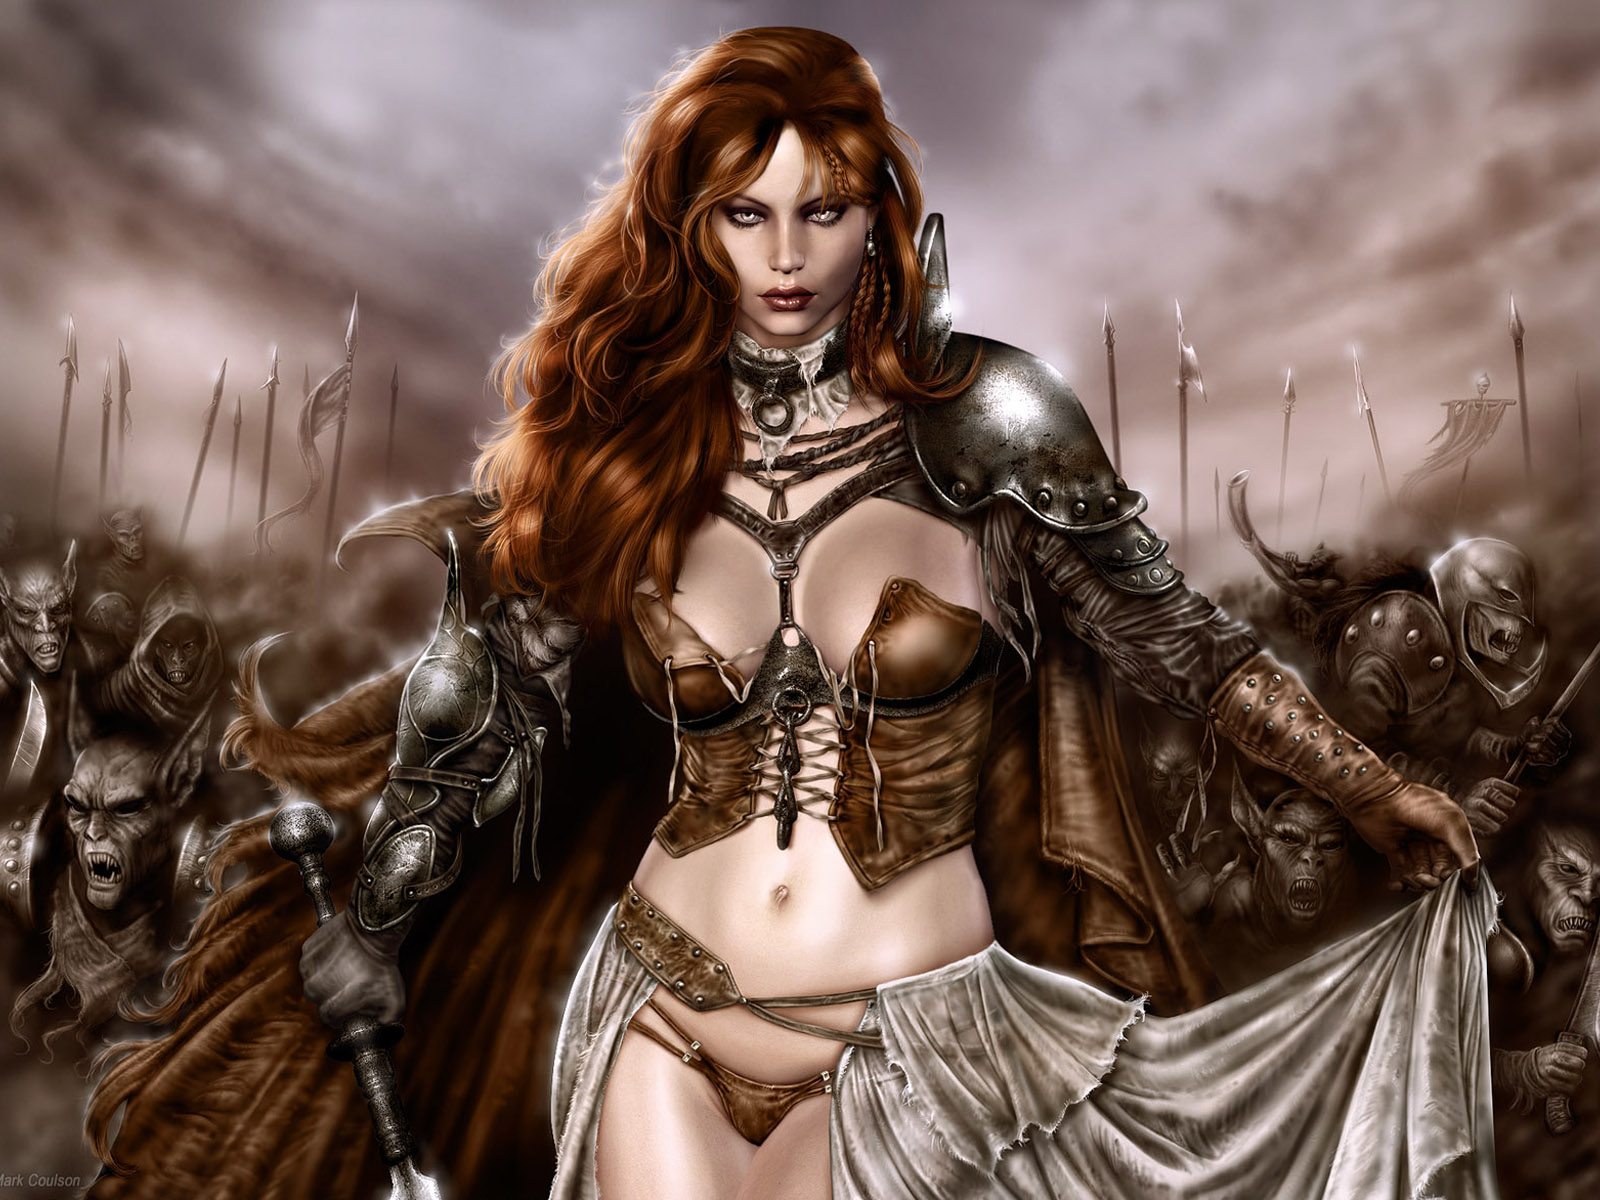 Female warrior with a sword in his hand, wallpaper - fantasy image.